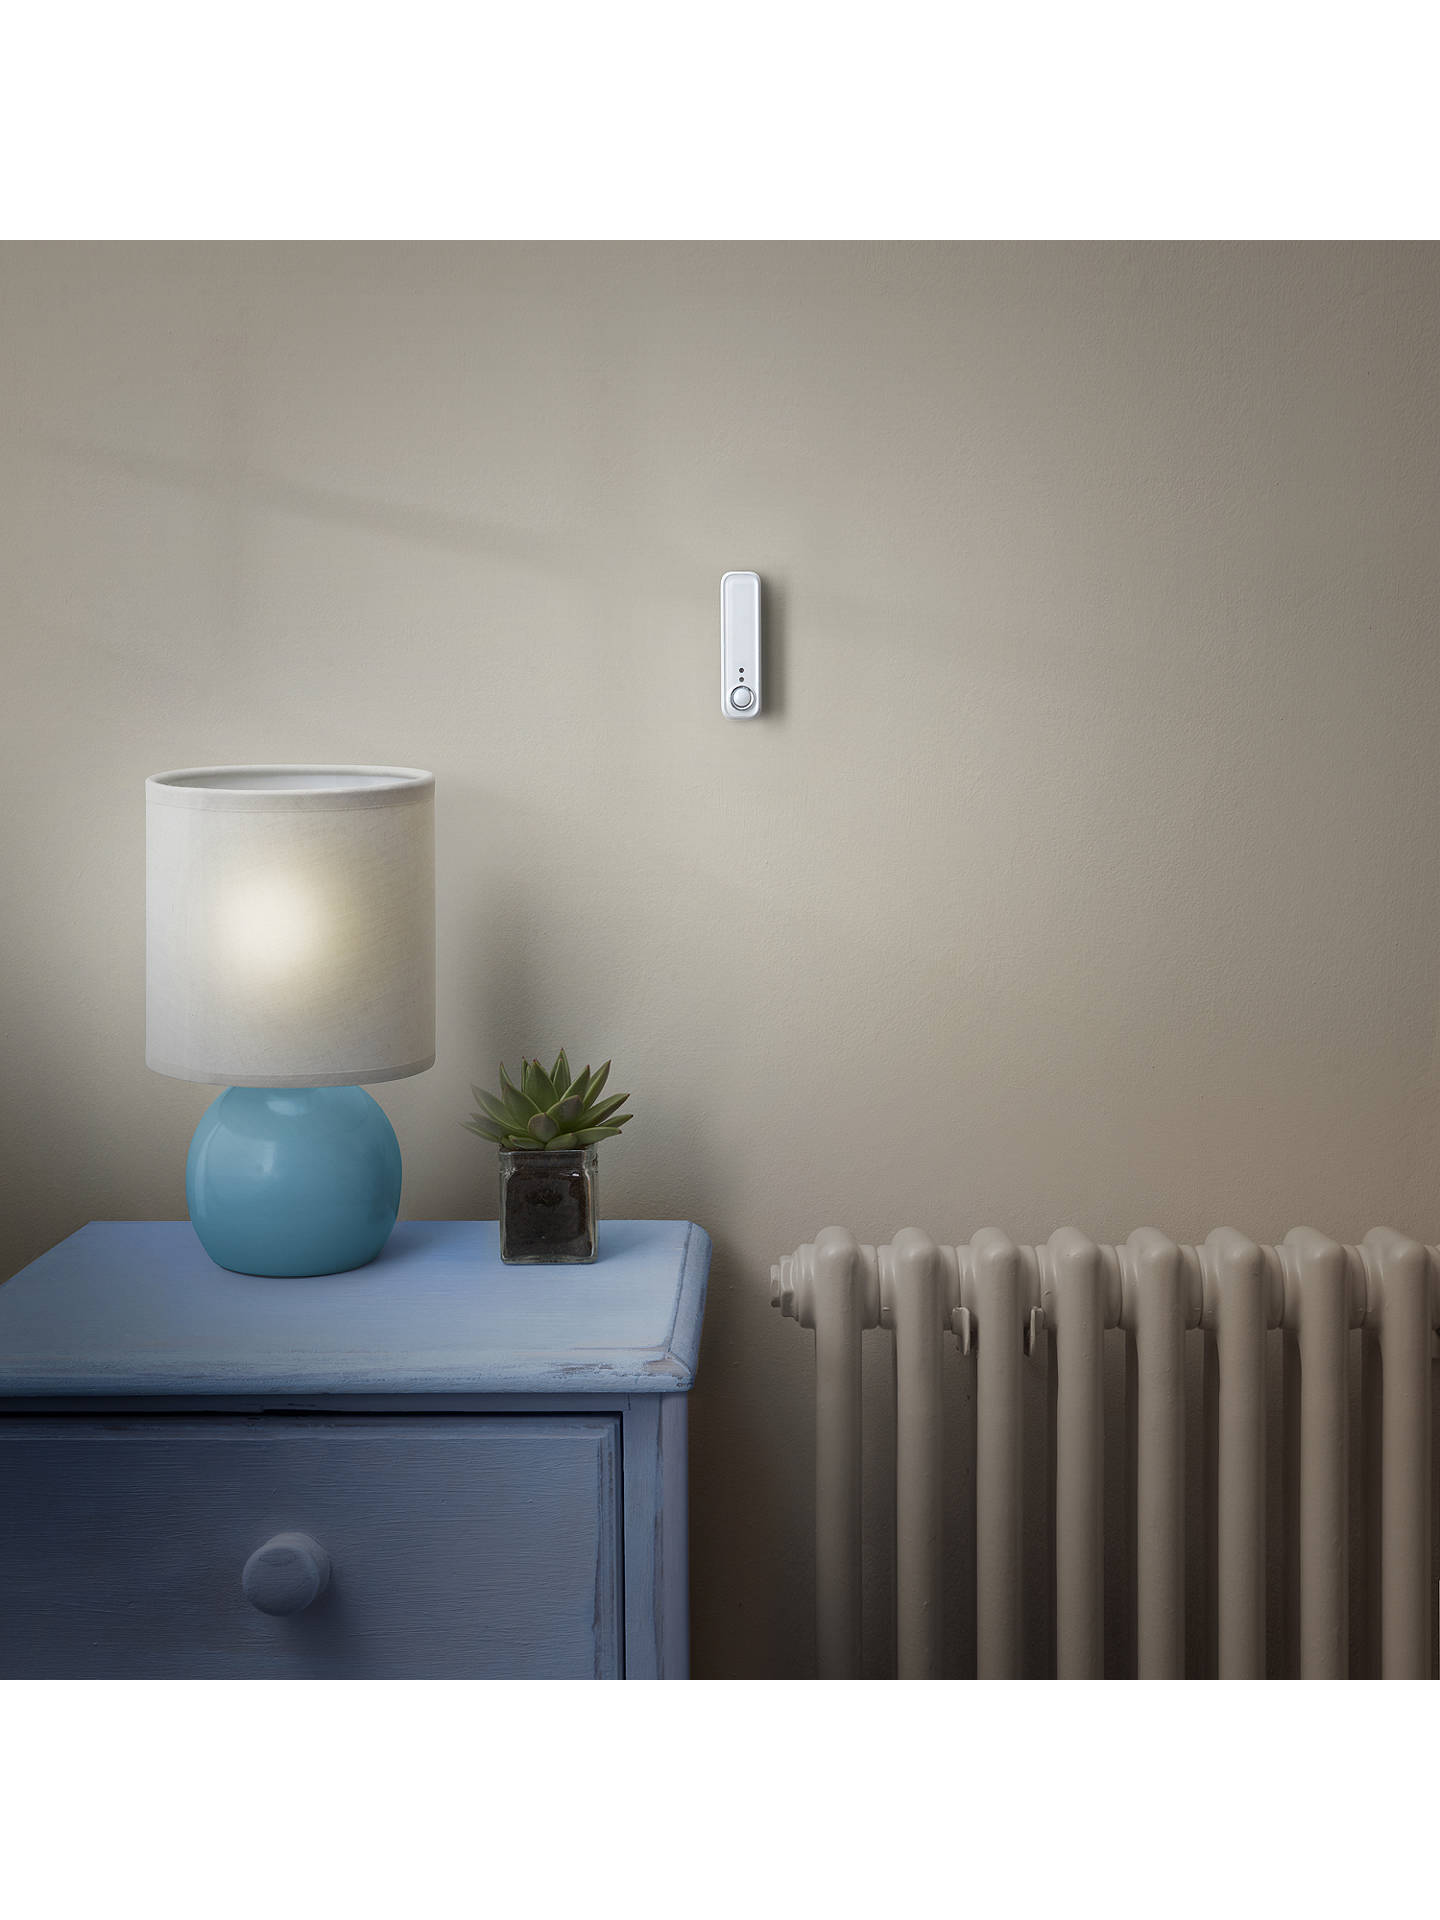 Buy Hive Wireless Smart Home Motion Sensor Online at johnlewis.com